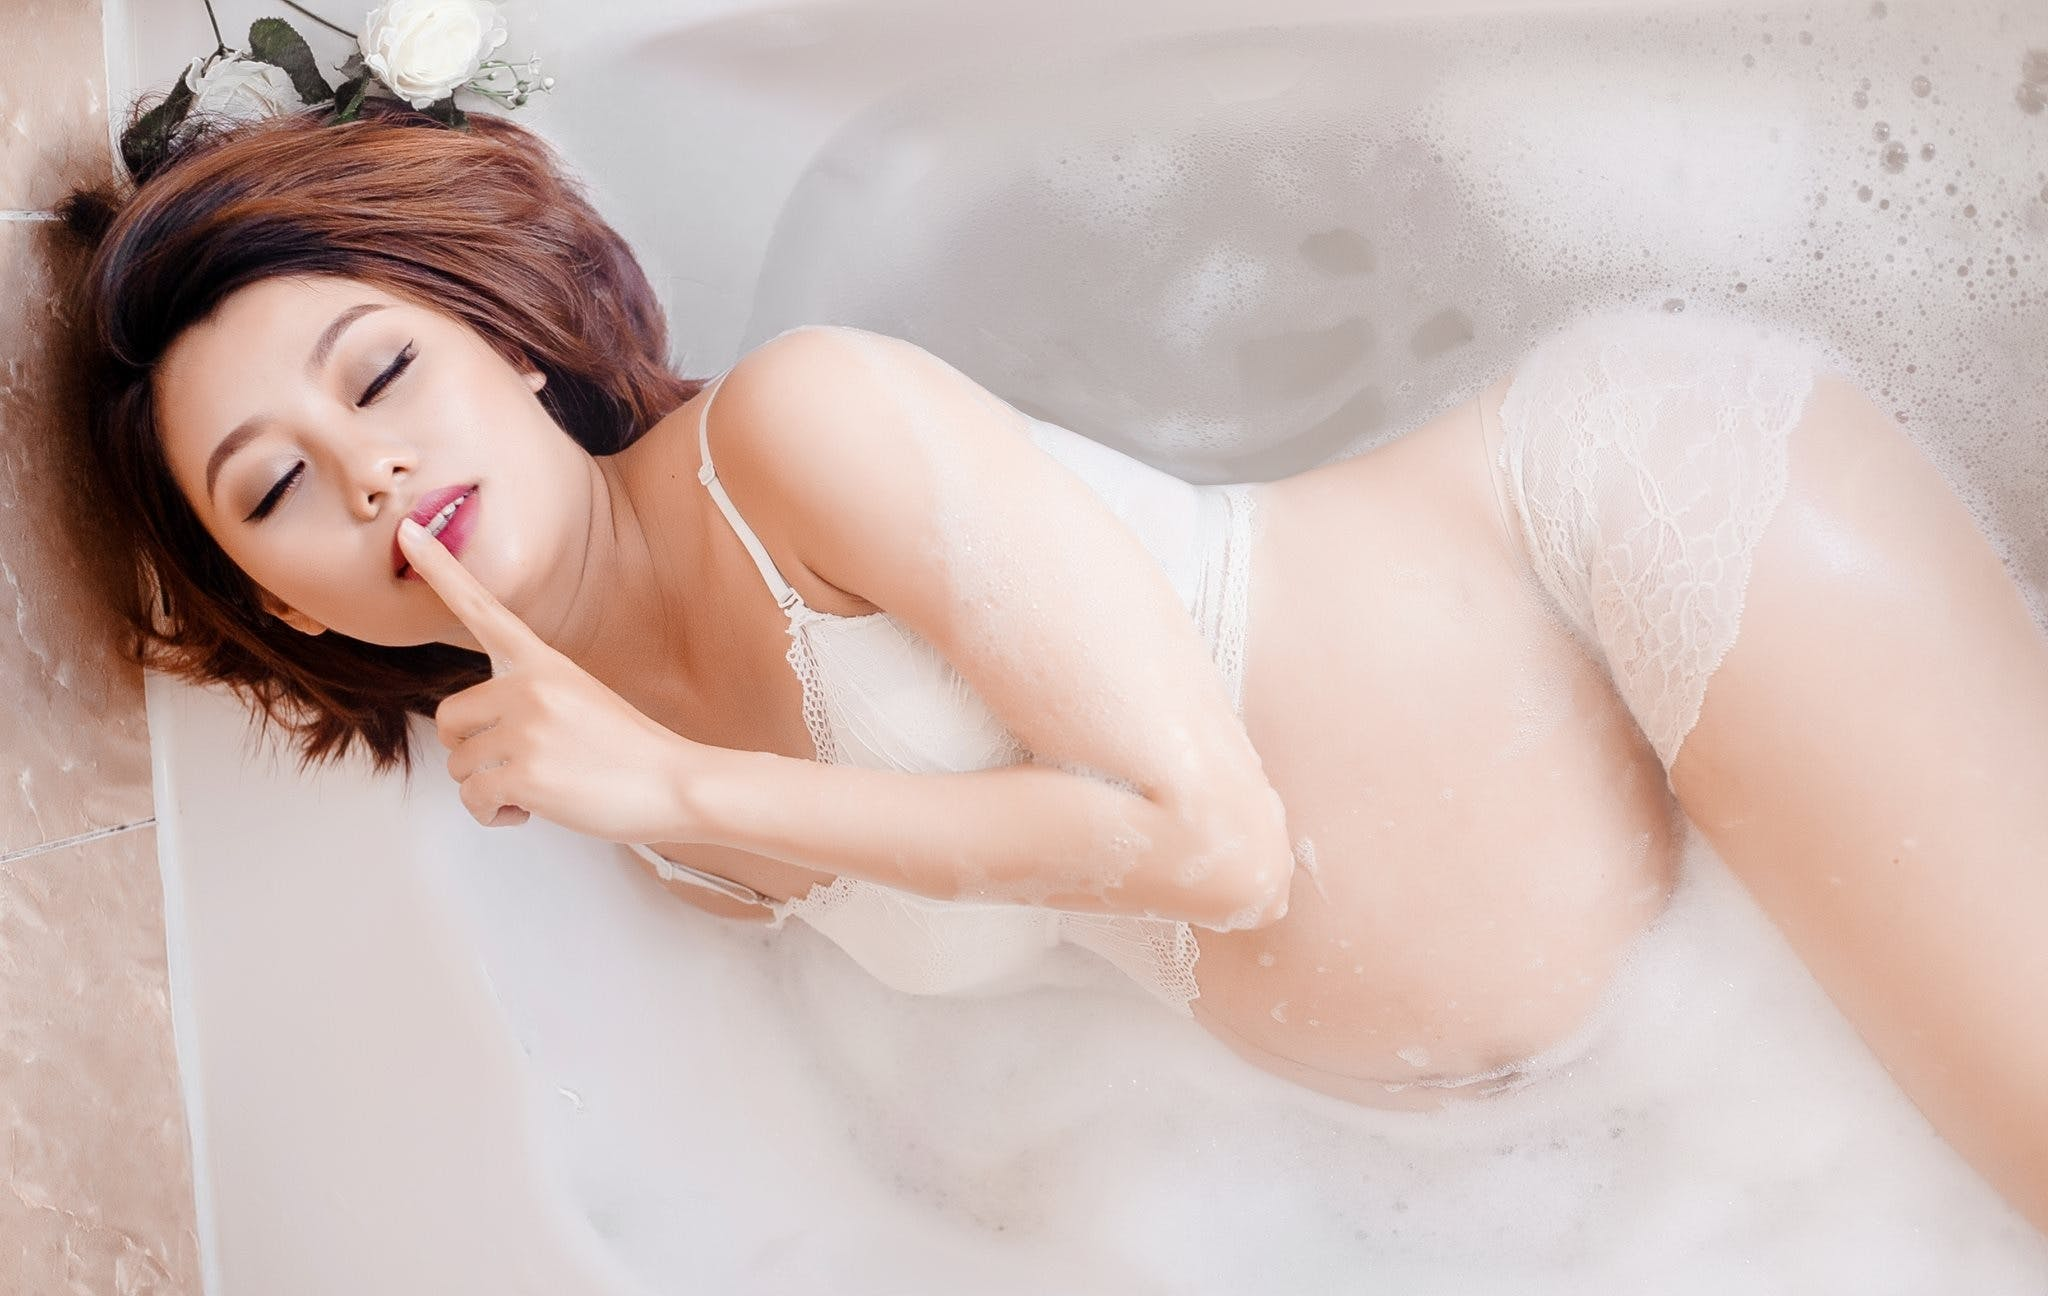 bath, bathtub, nude